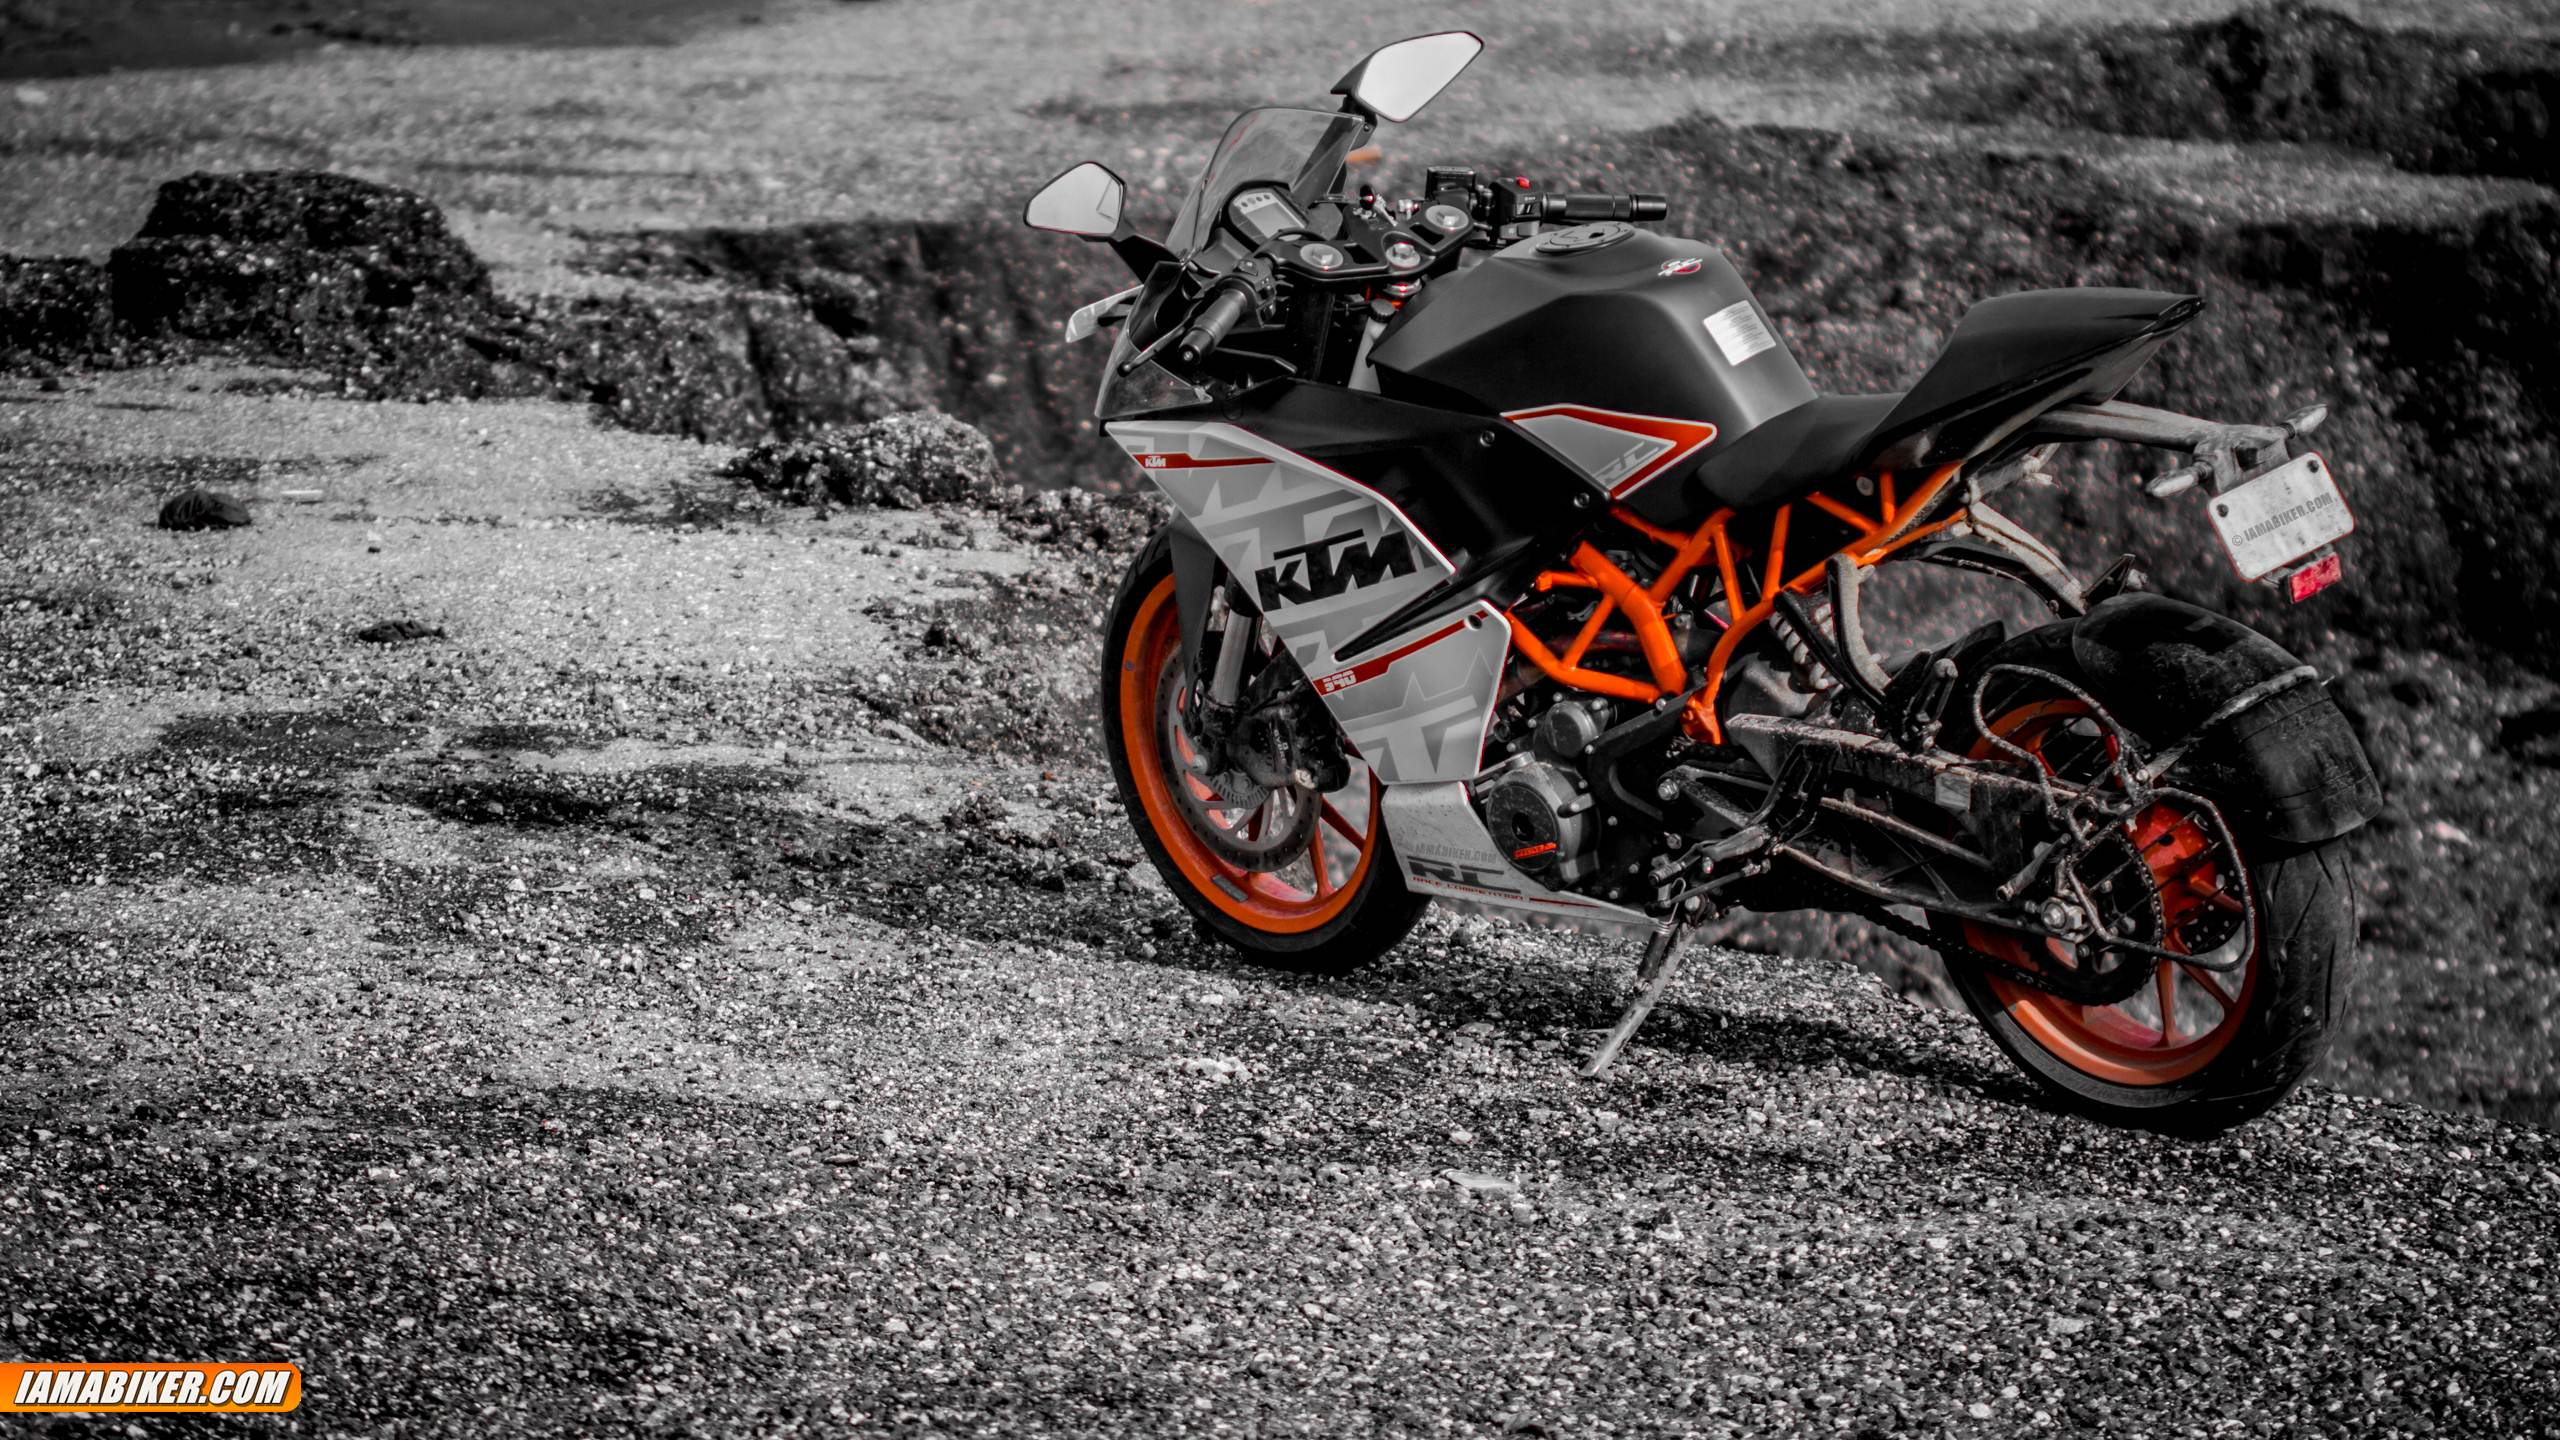 Ktm Rc Wallpaper Download